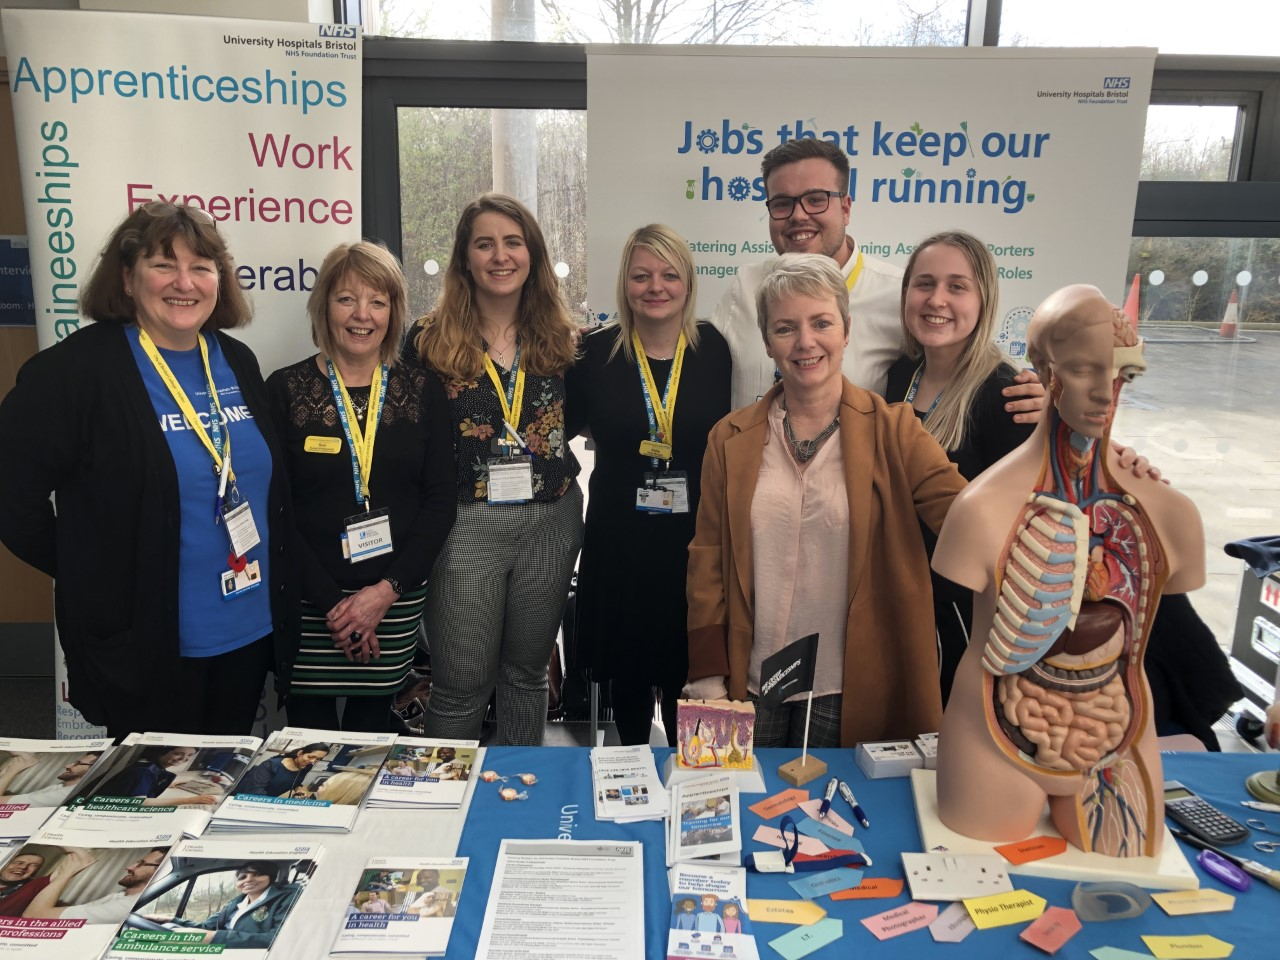 Karin Smyth MP with the NHS apprenticeships team at the 2019 fair